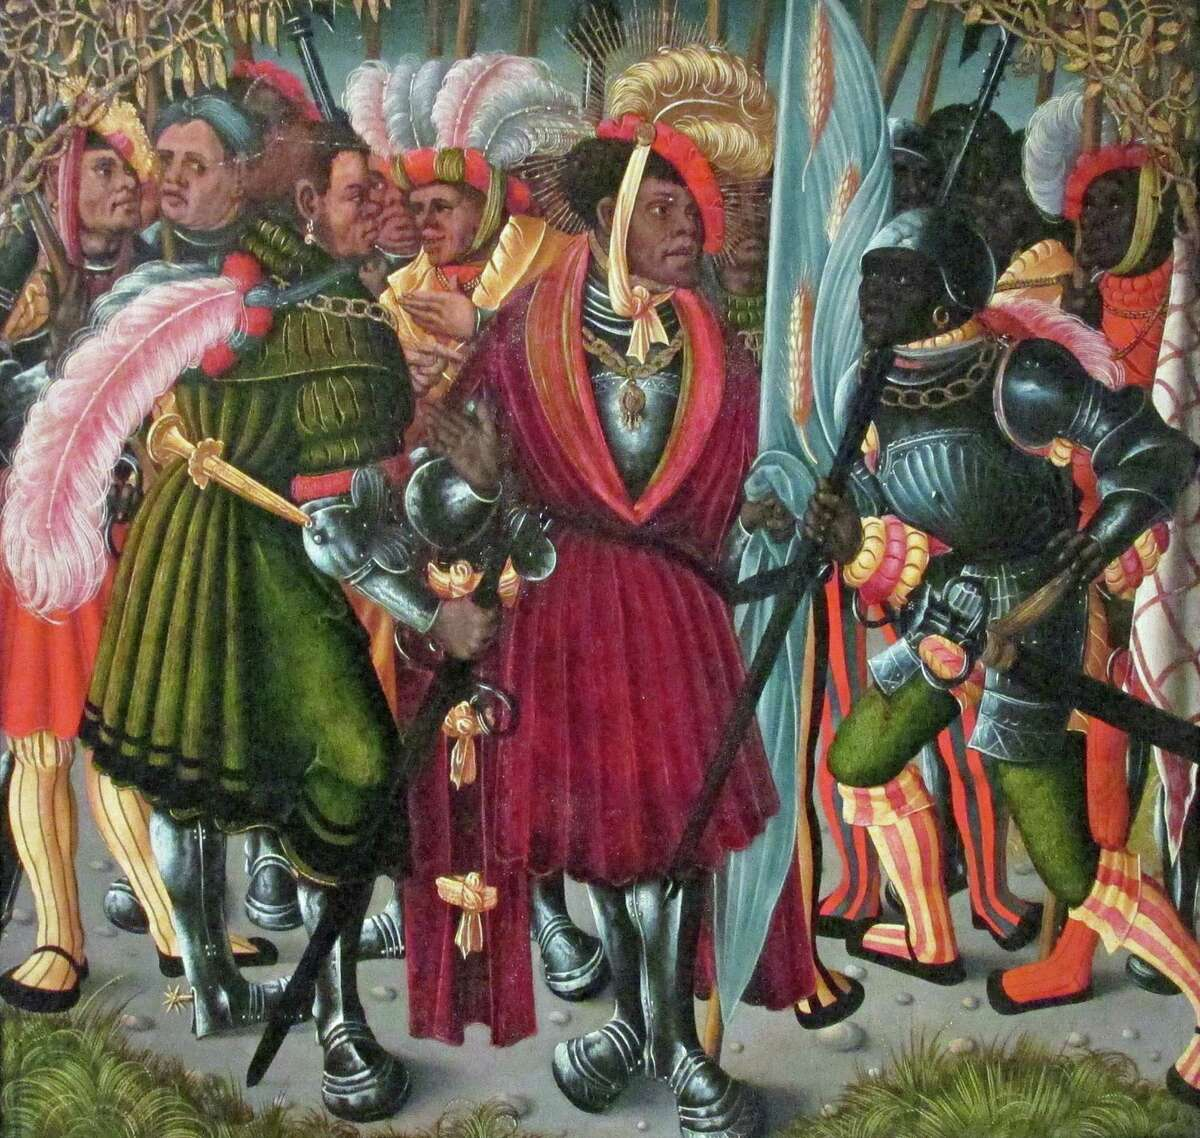 """Also exhibited in Maryan Ainsworth's exhibit """"Cranach's Saint Maurice"""" is painting from the same period, ìSaint Maurice and the Theban Legion,î from the collection of former Greenwich resident Marei von Saher."""